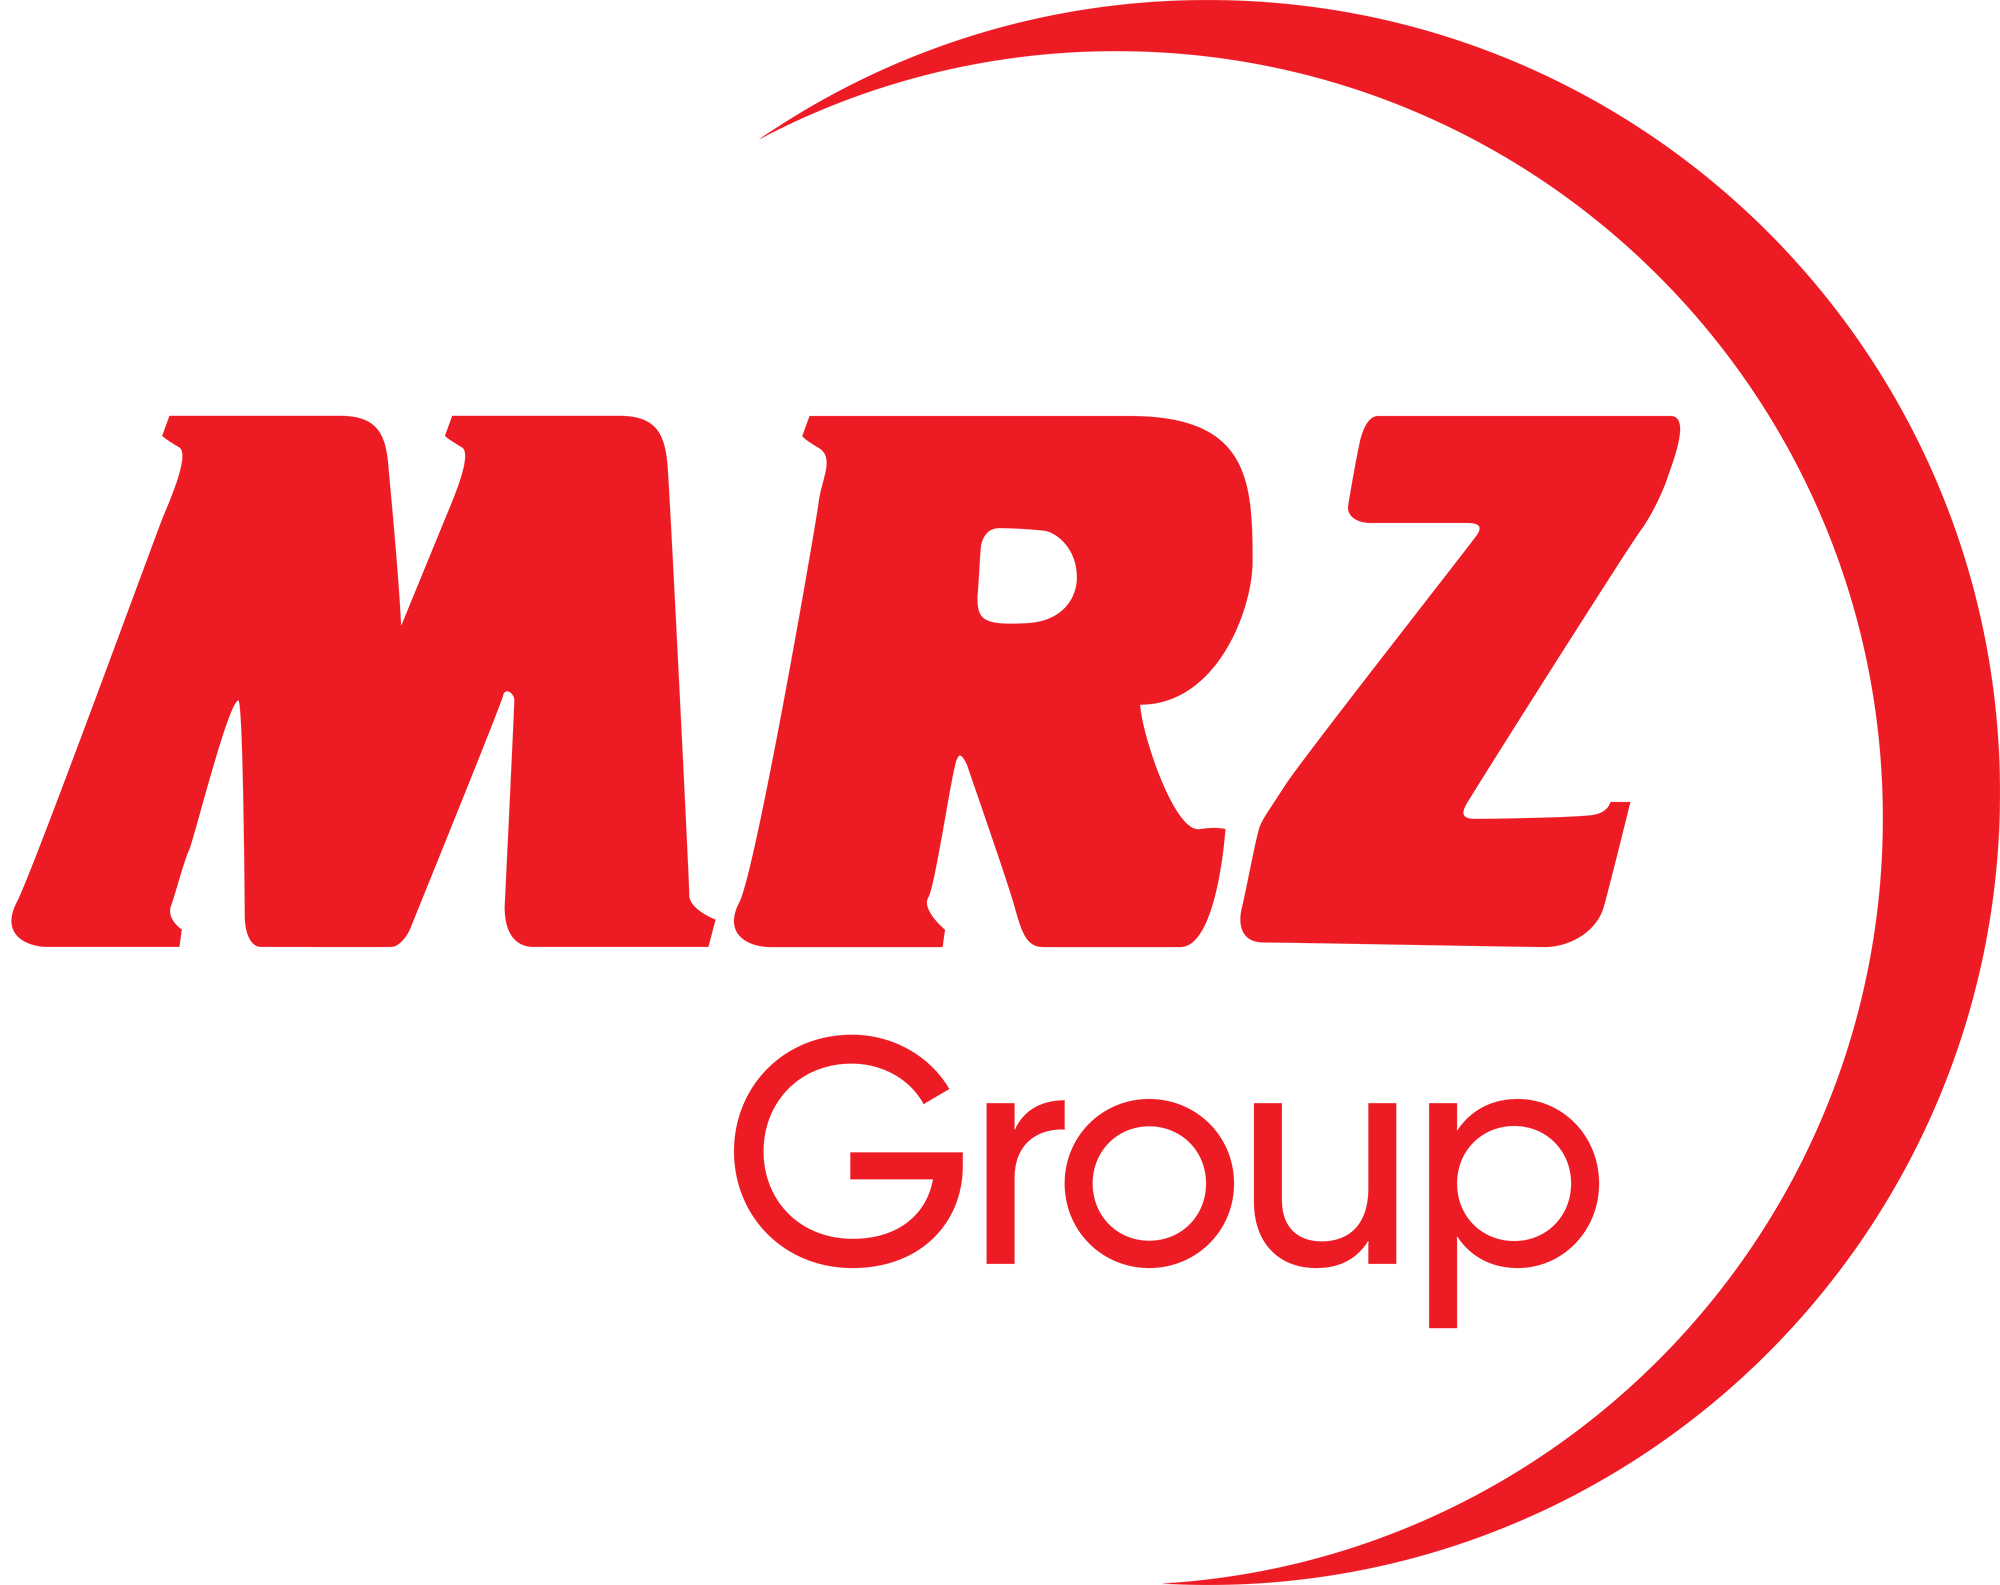 MRZ Group